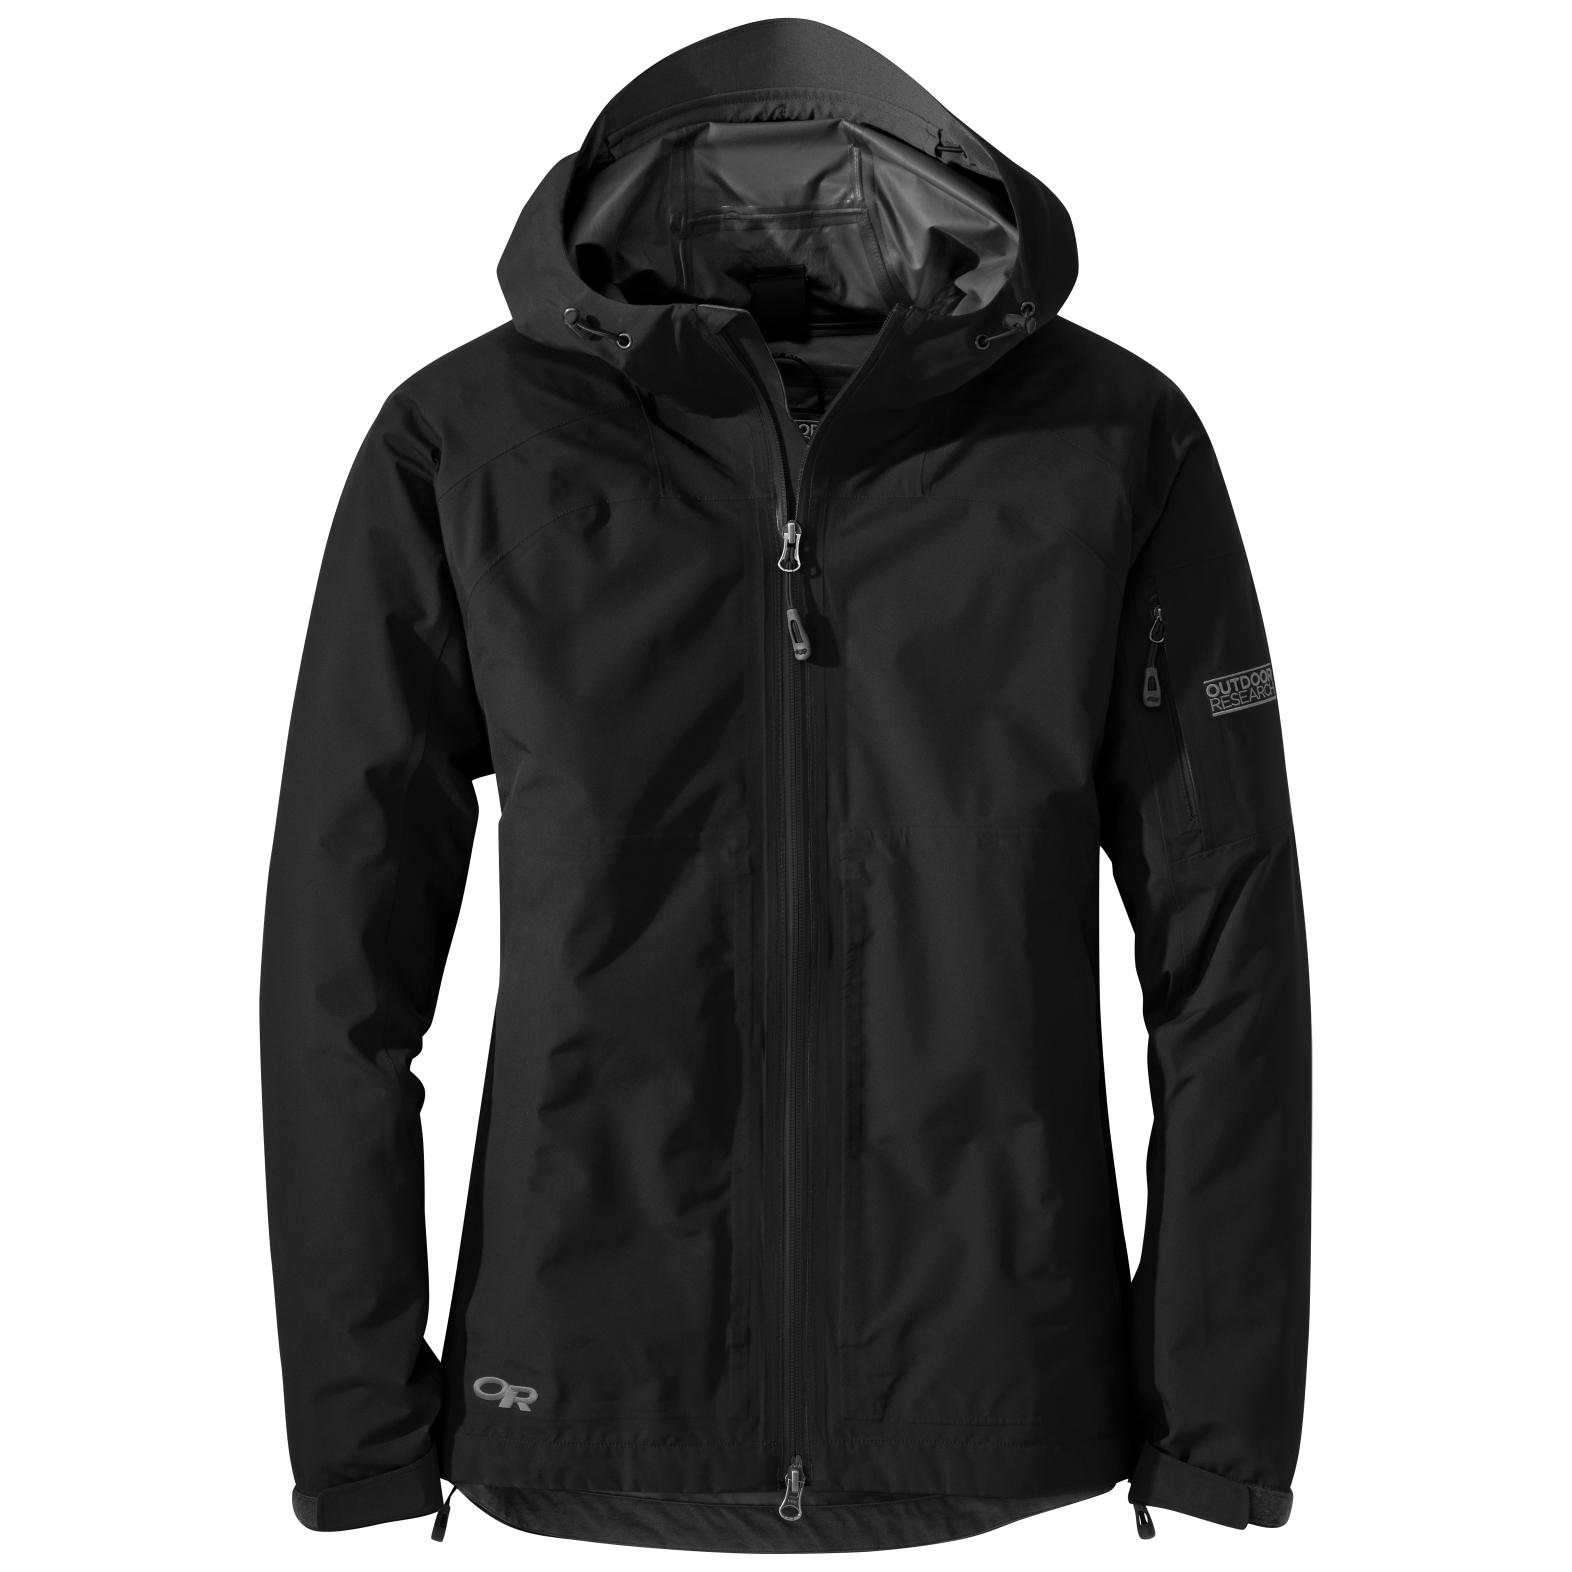 Outdoor Research-Aspire Jacket 2018 - Women's